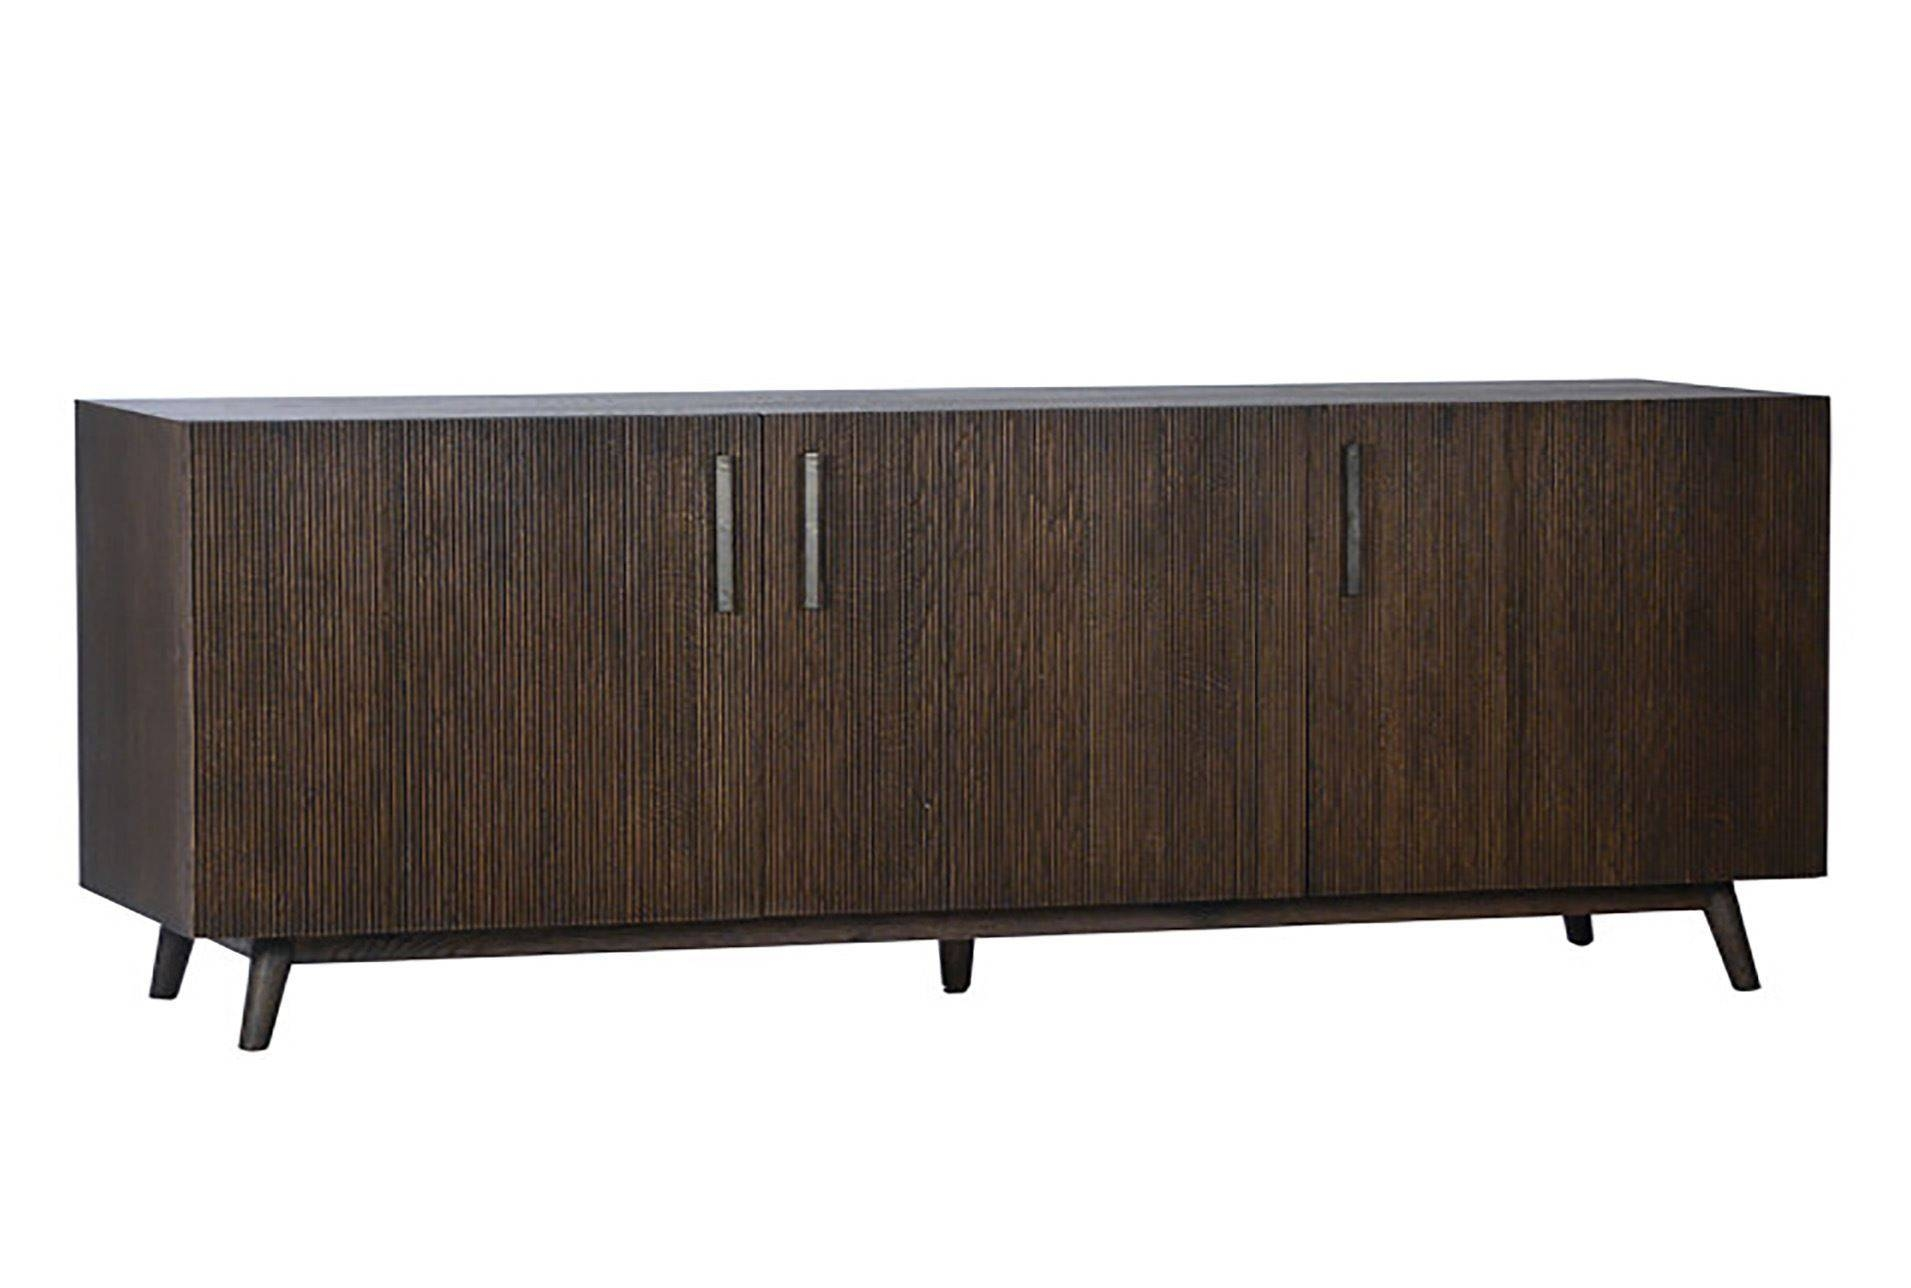 Sideboards. Awesome 72 Inch Sideboard: 72-Inch-Sideboard-80-Inch with 80 Inch Sideboards (Image 23 of 30)